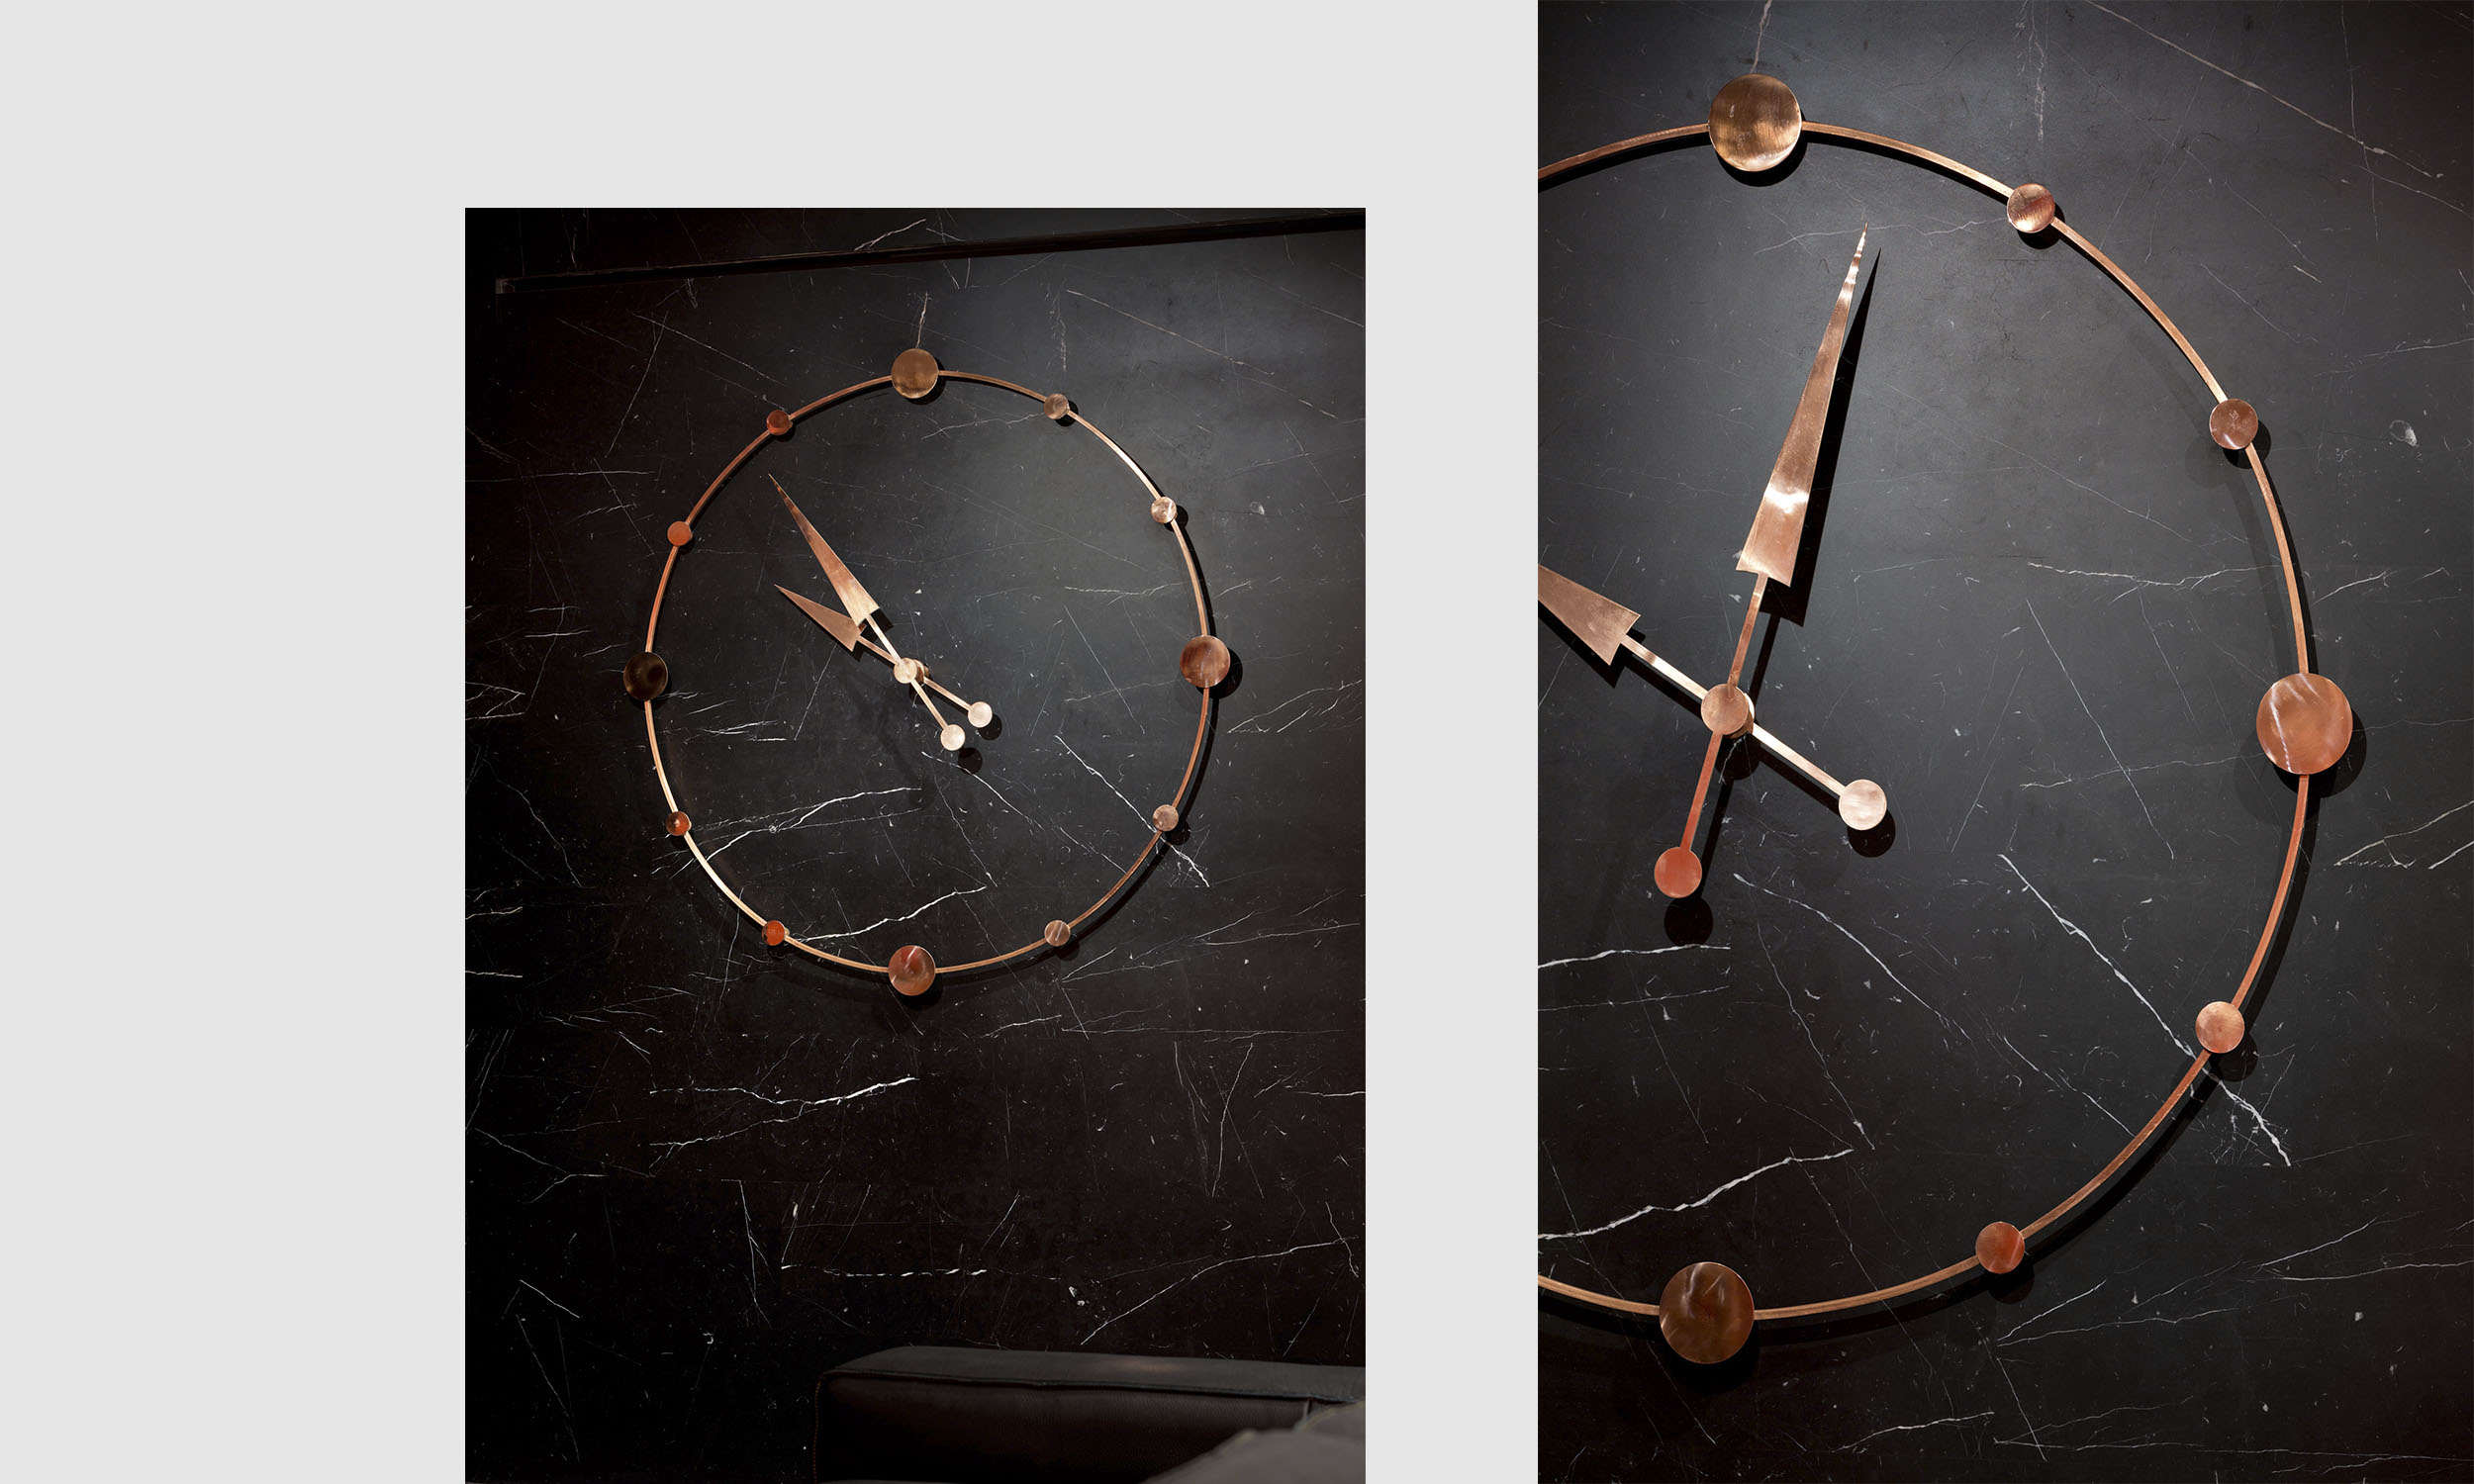 Медные часы созданные нашим токарем. Copper clock crafted by our lathe hand.